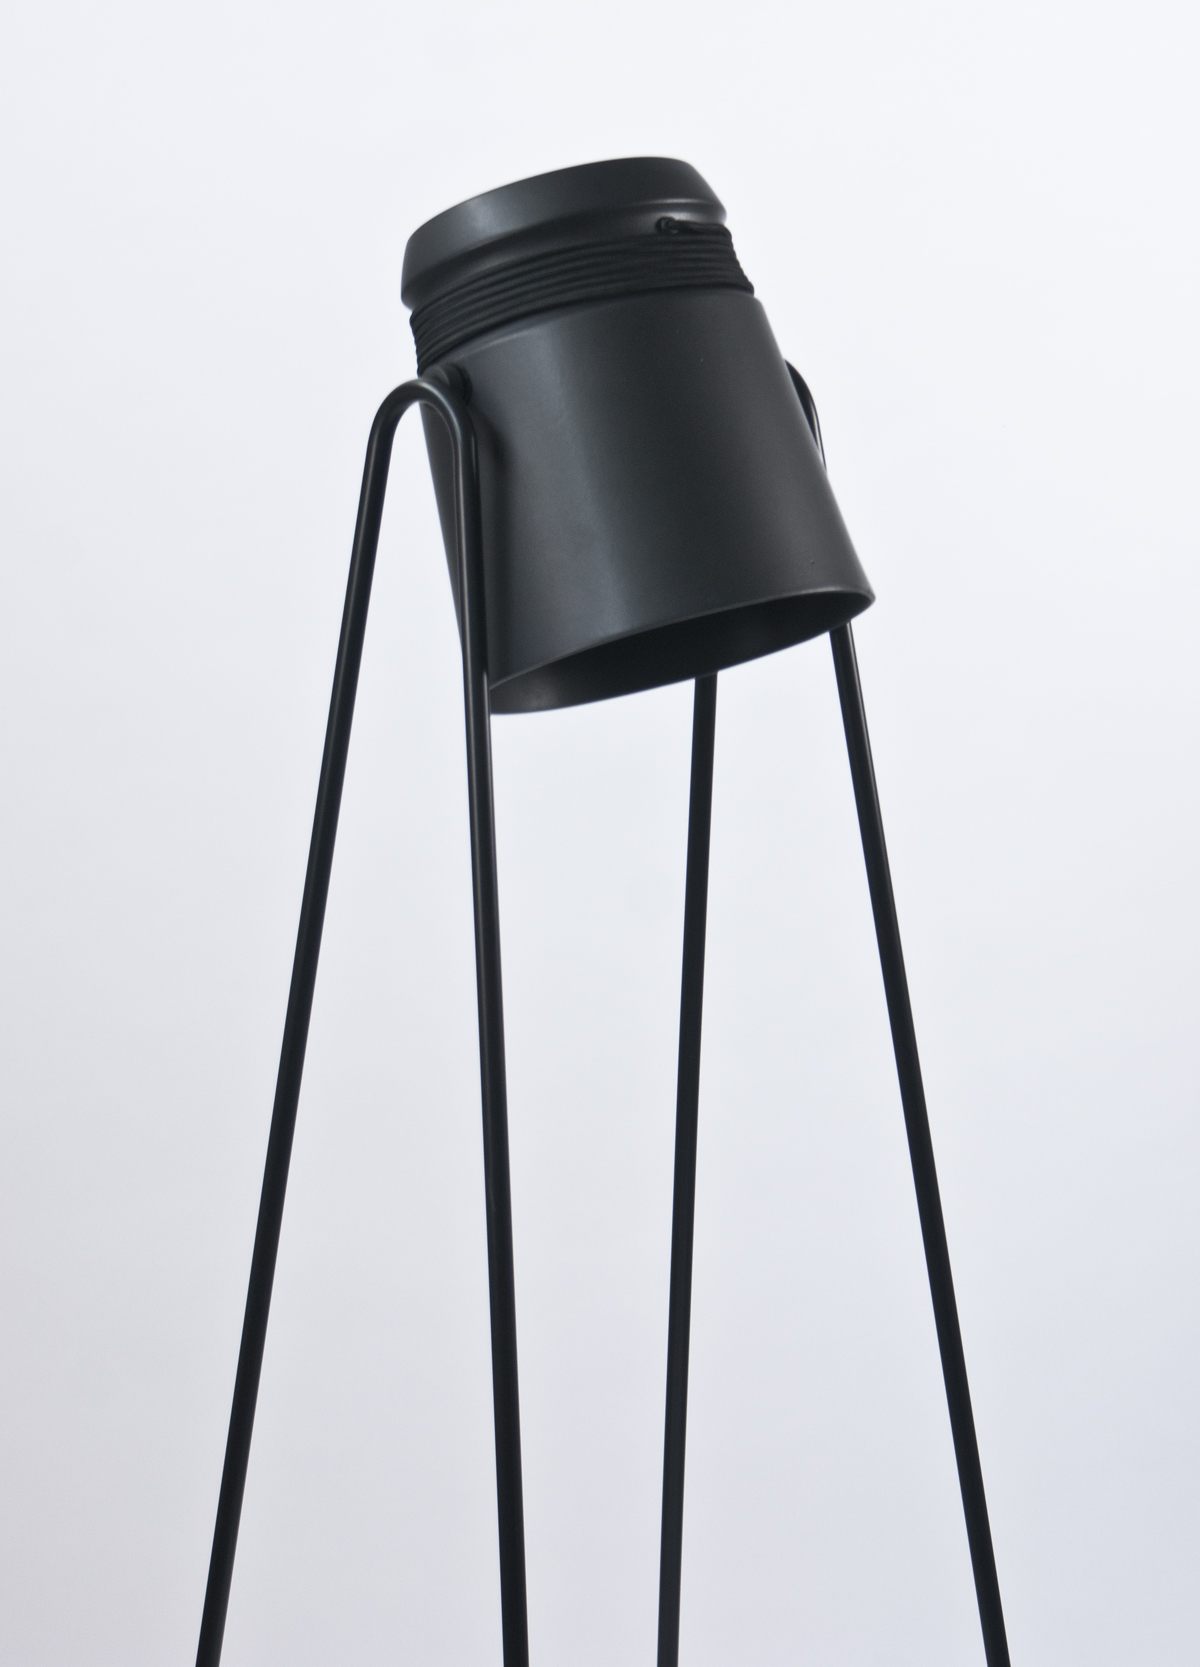 Cable Light Floor lamp design by Patrick Hartog